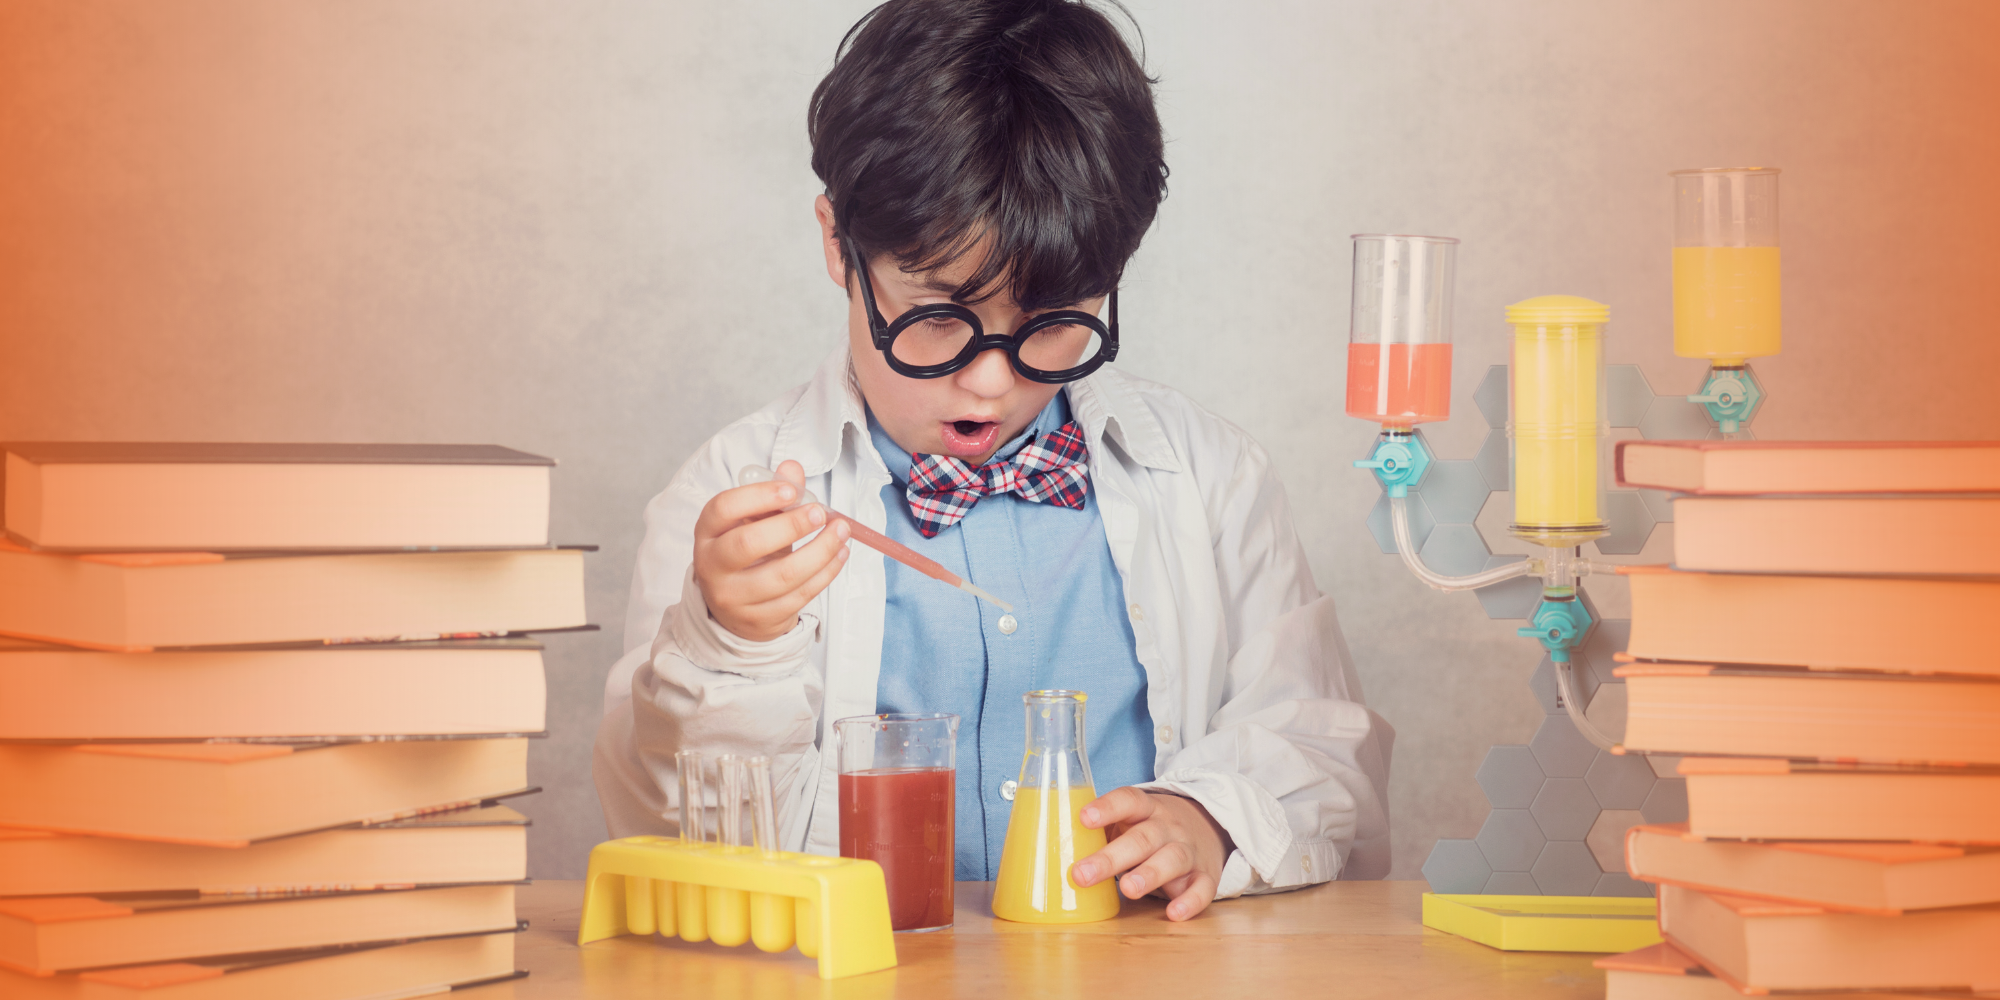 child performing science experiment